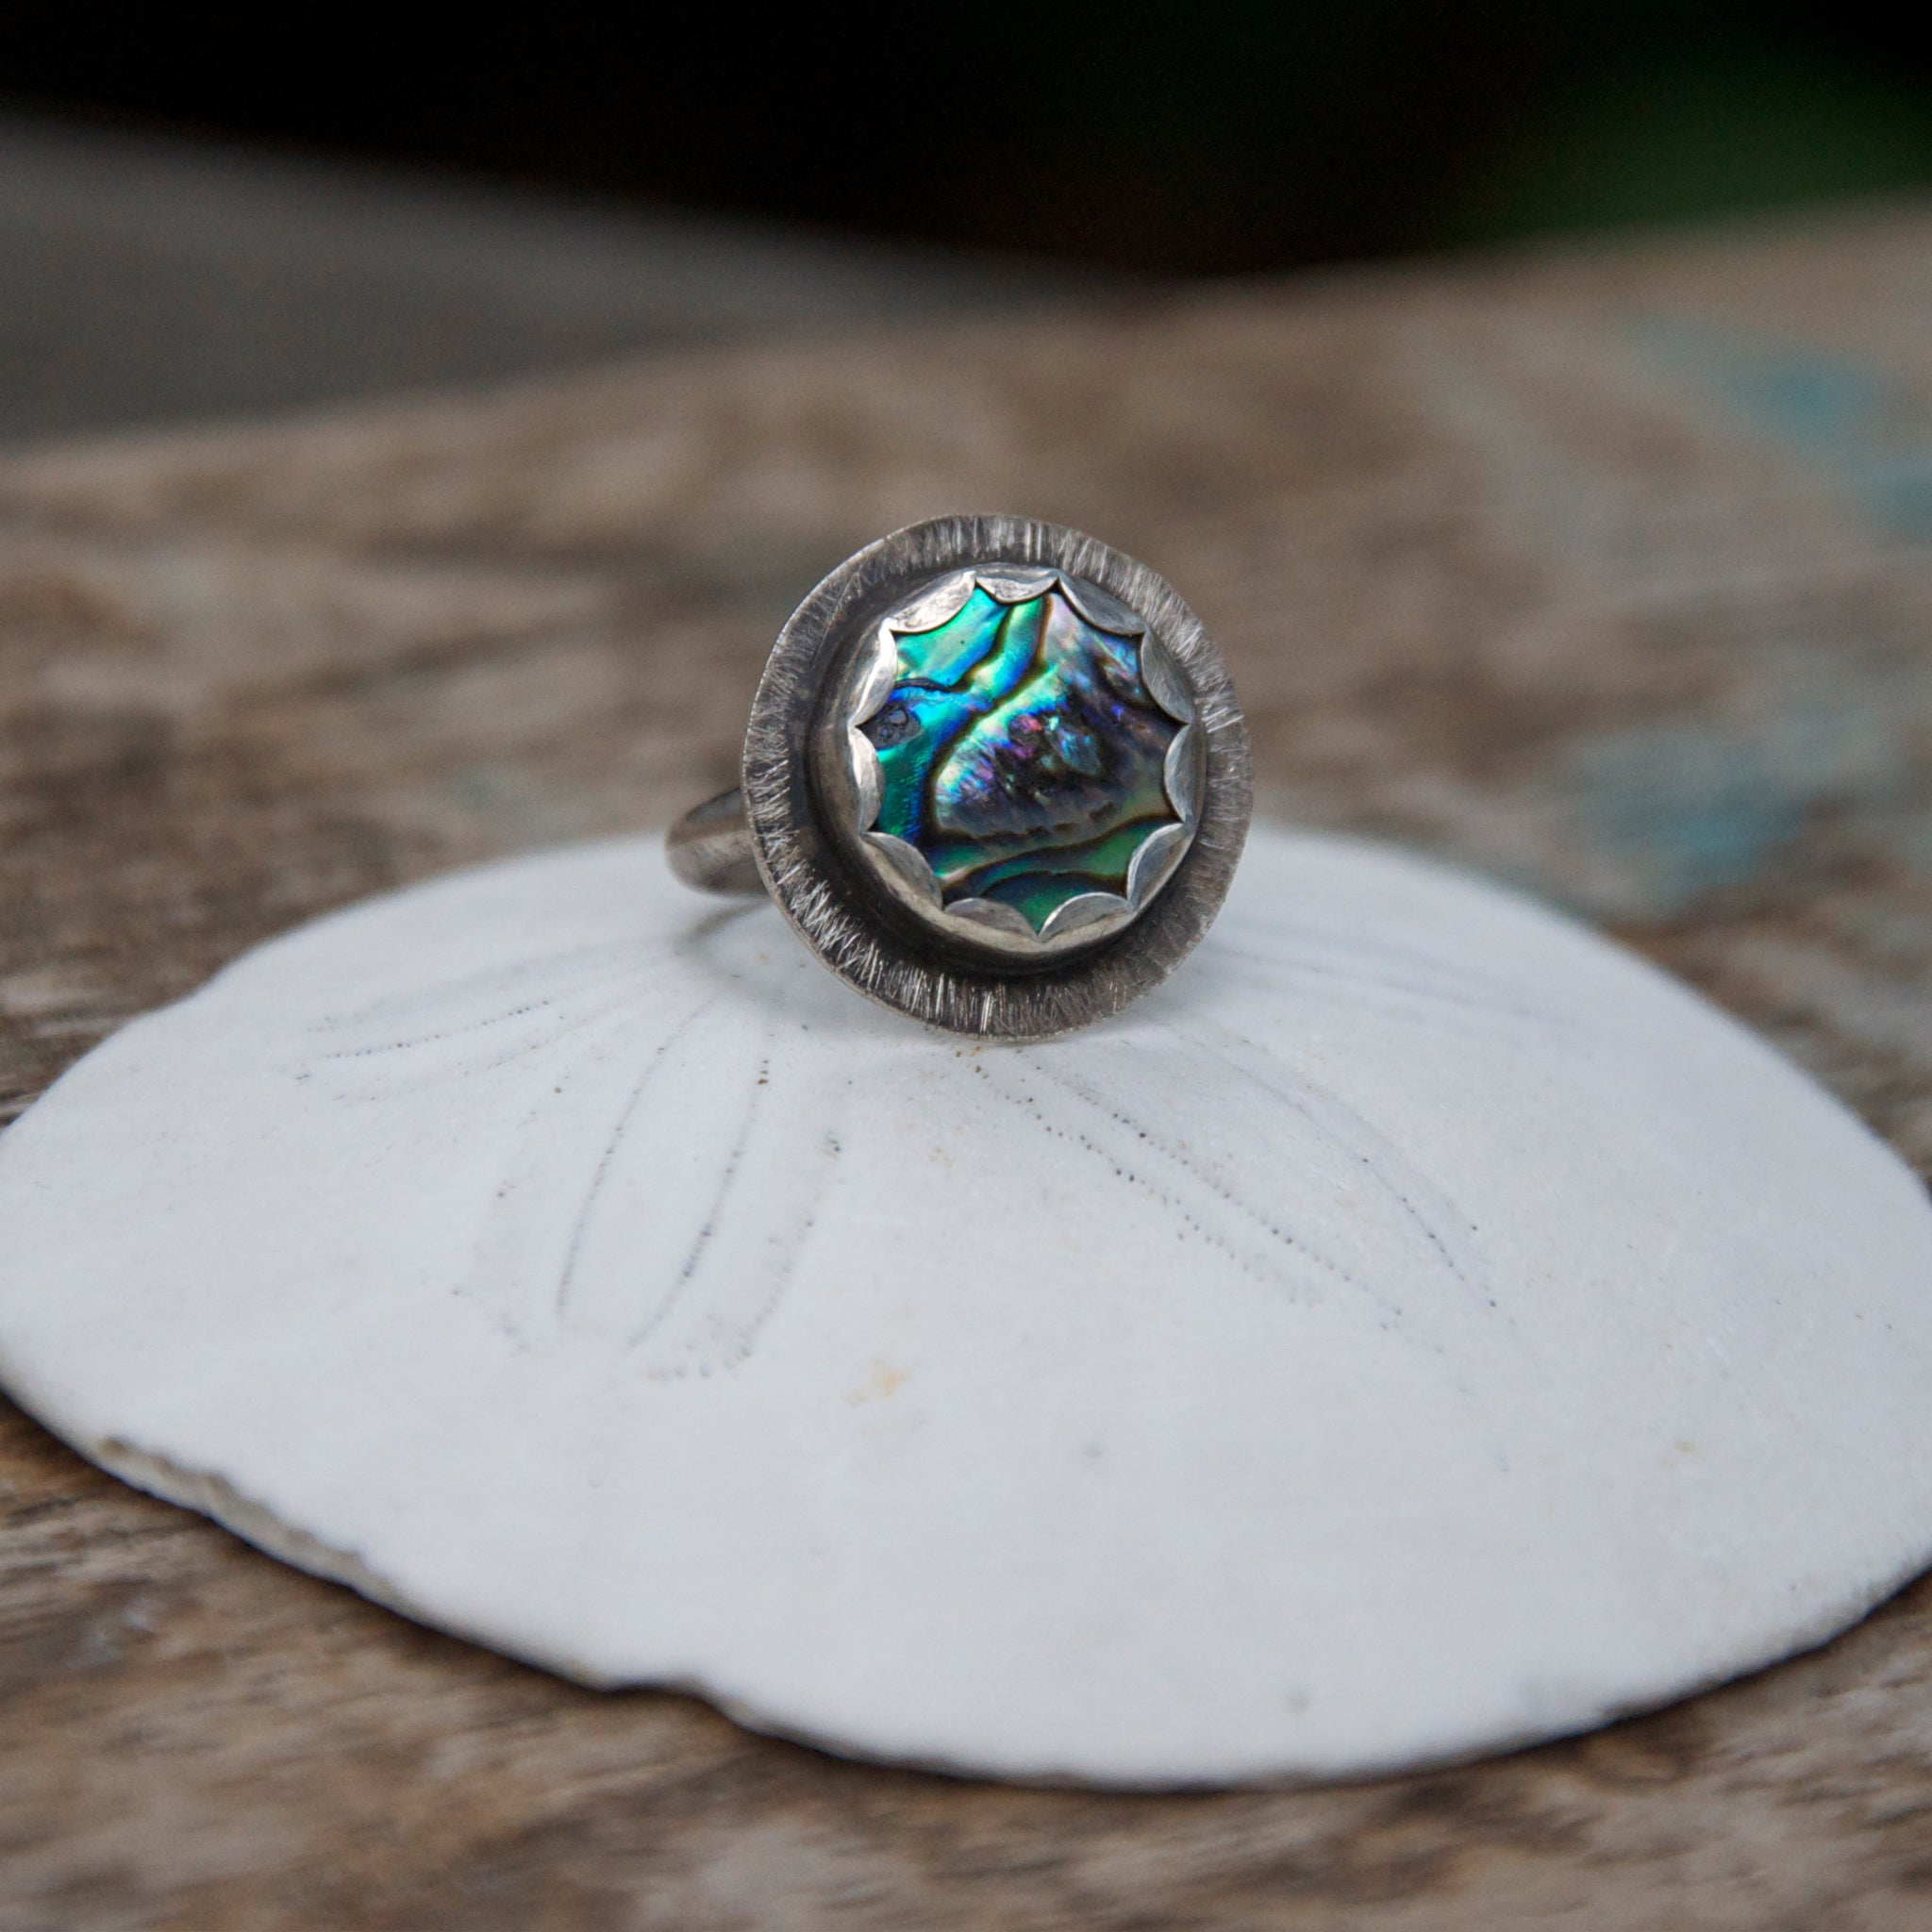 Sea-Flower-Abalone-Shell-Ring-With-Rustic-Finish